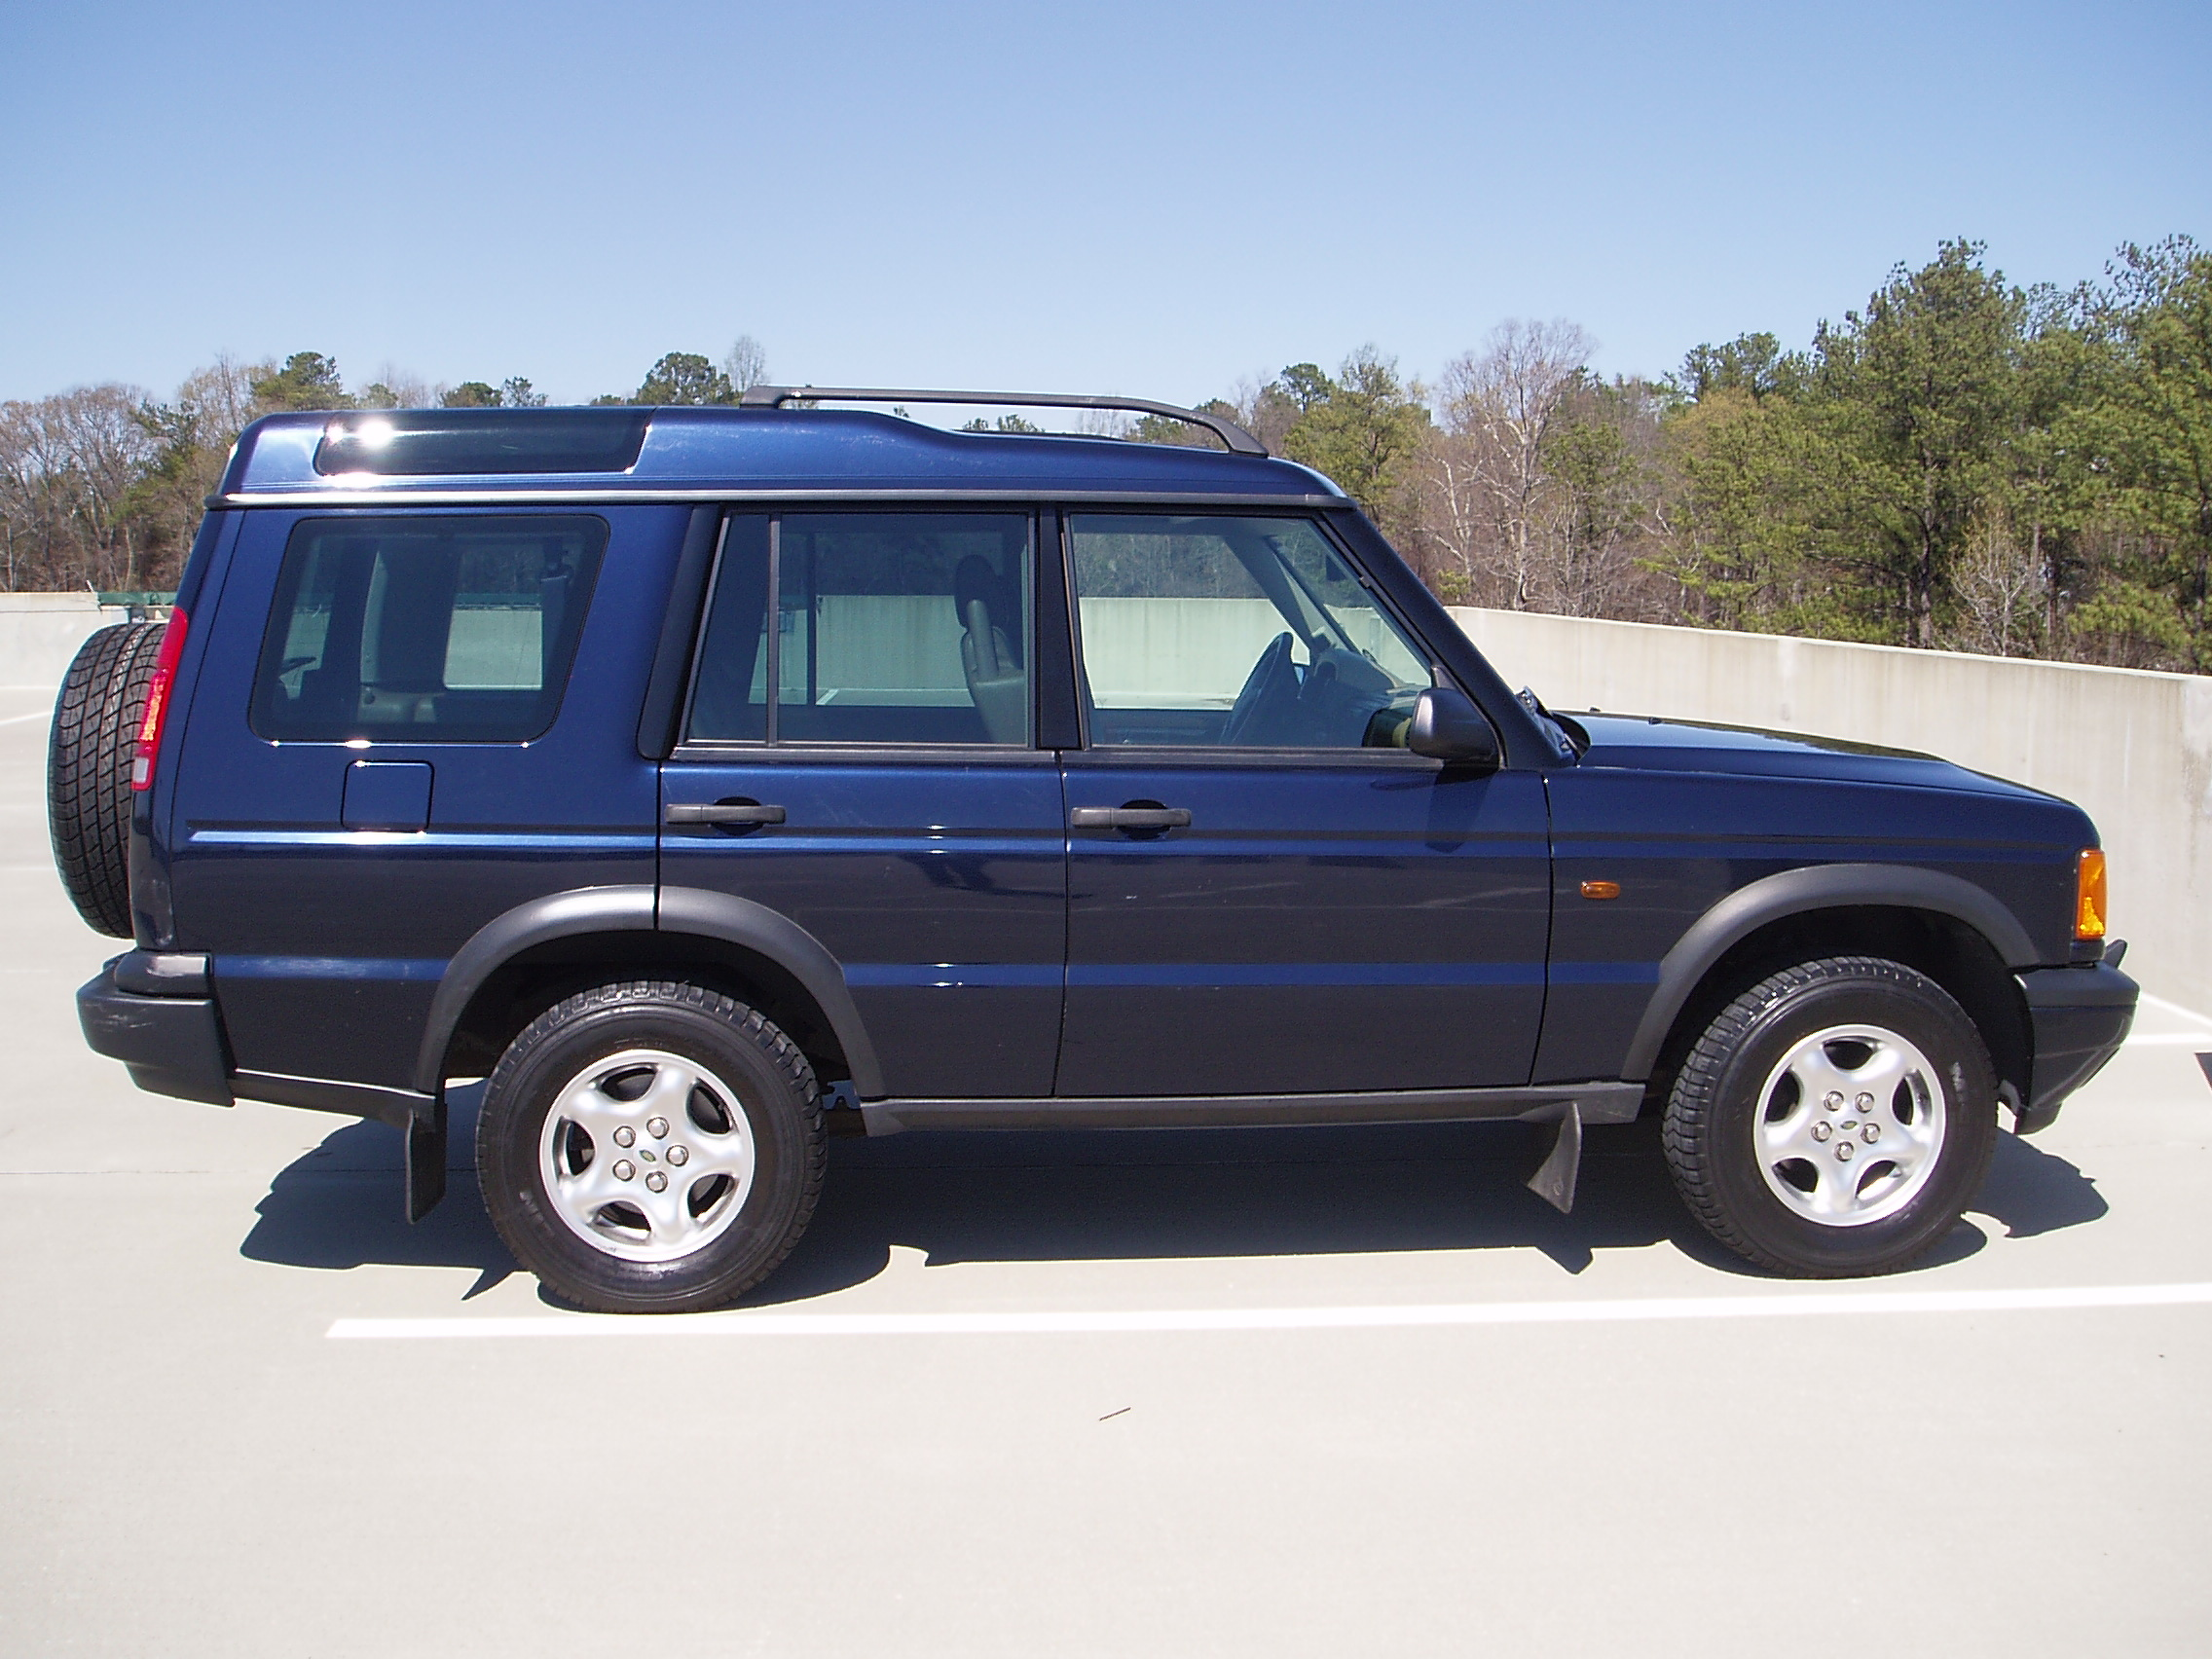 2000 Land Rover Discovery Series II Information and photos